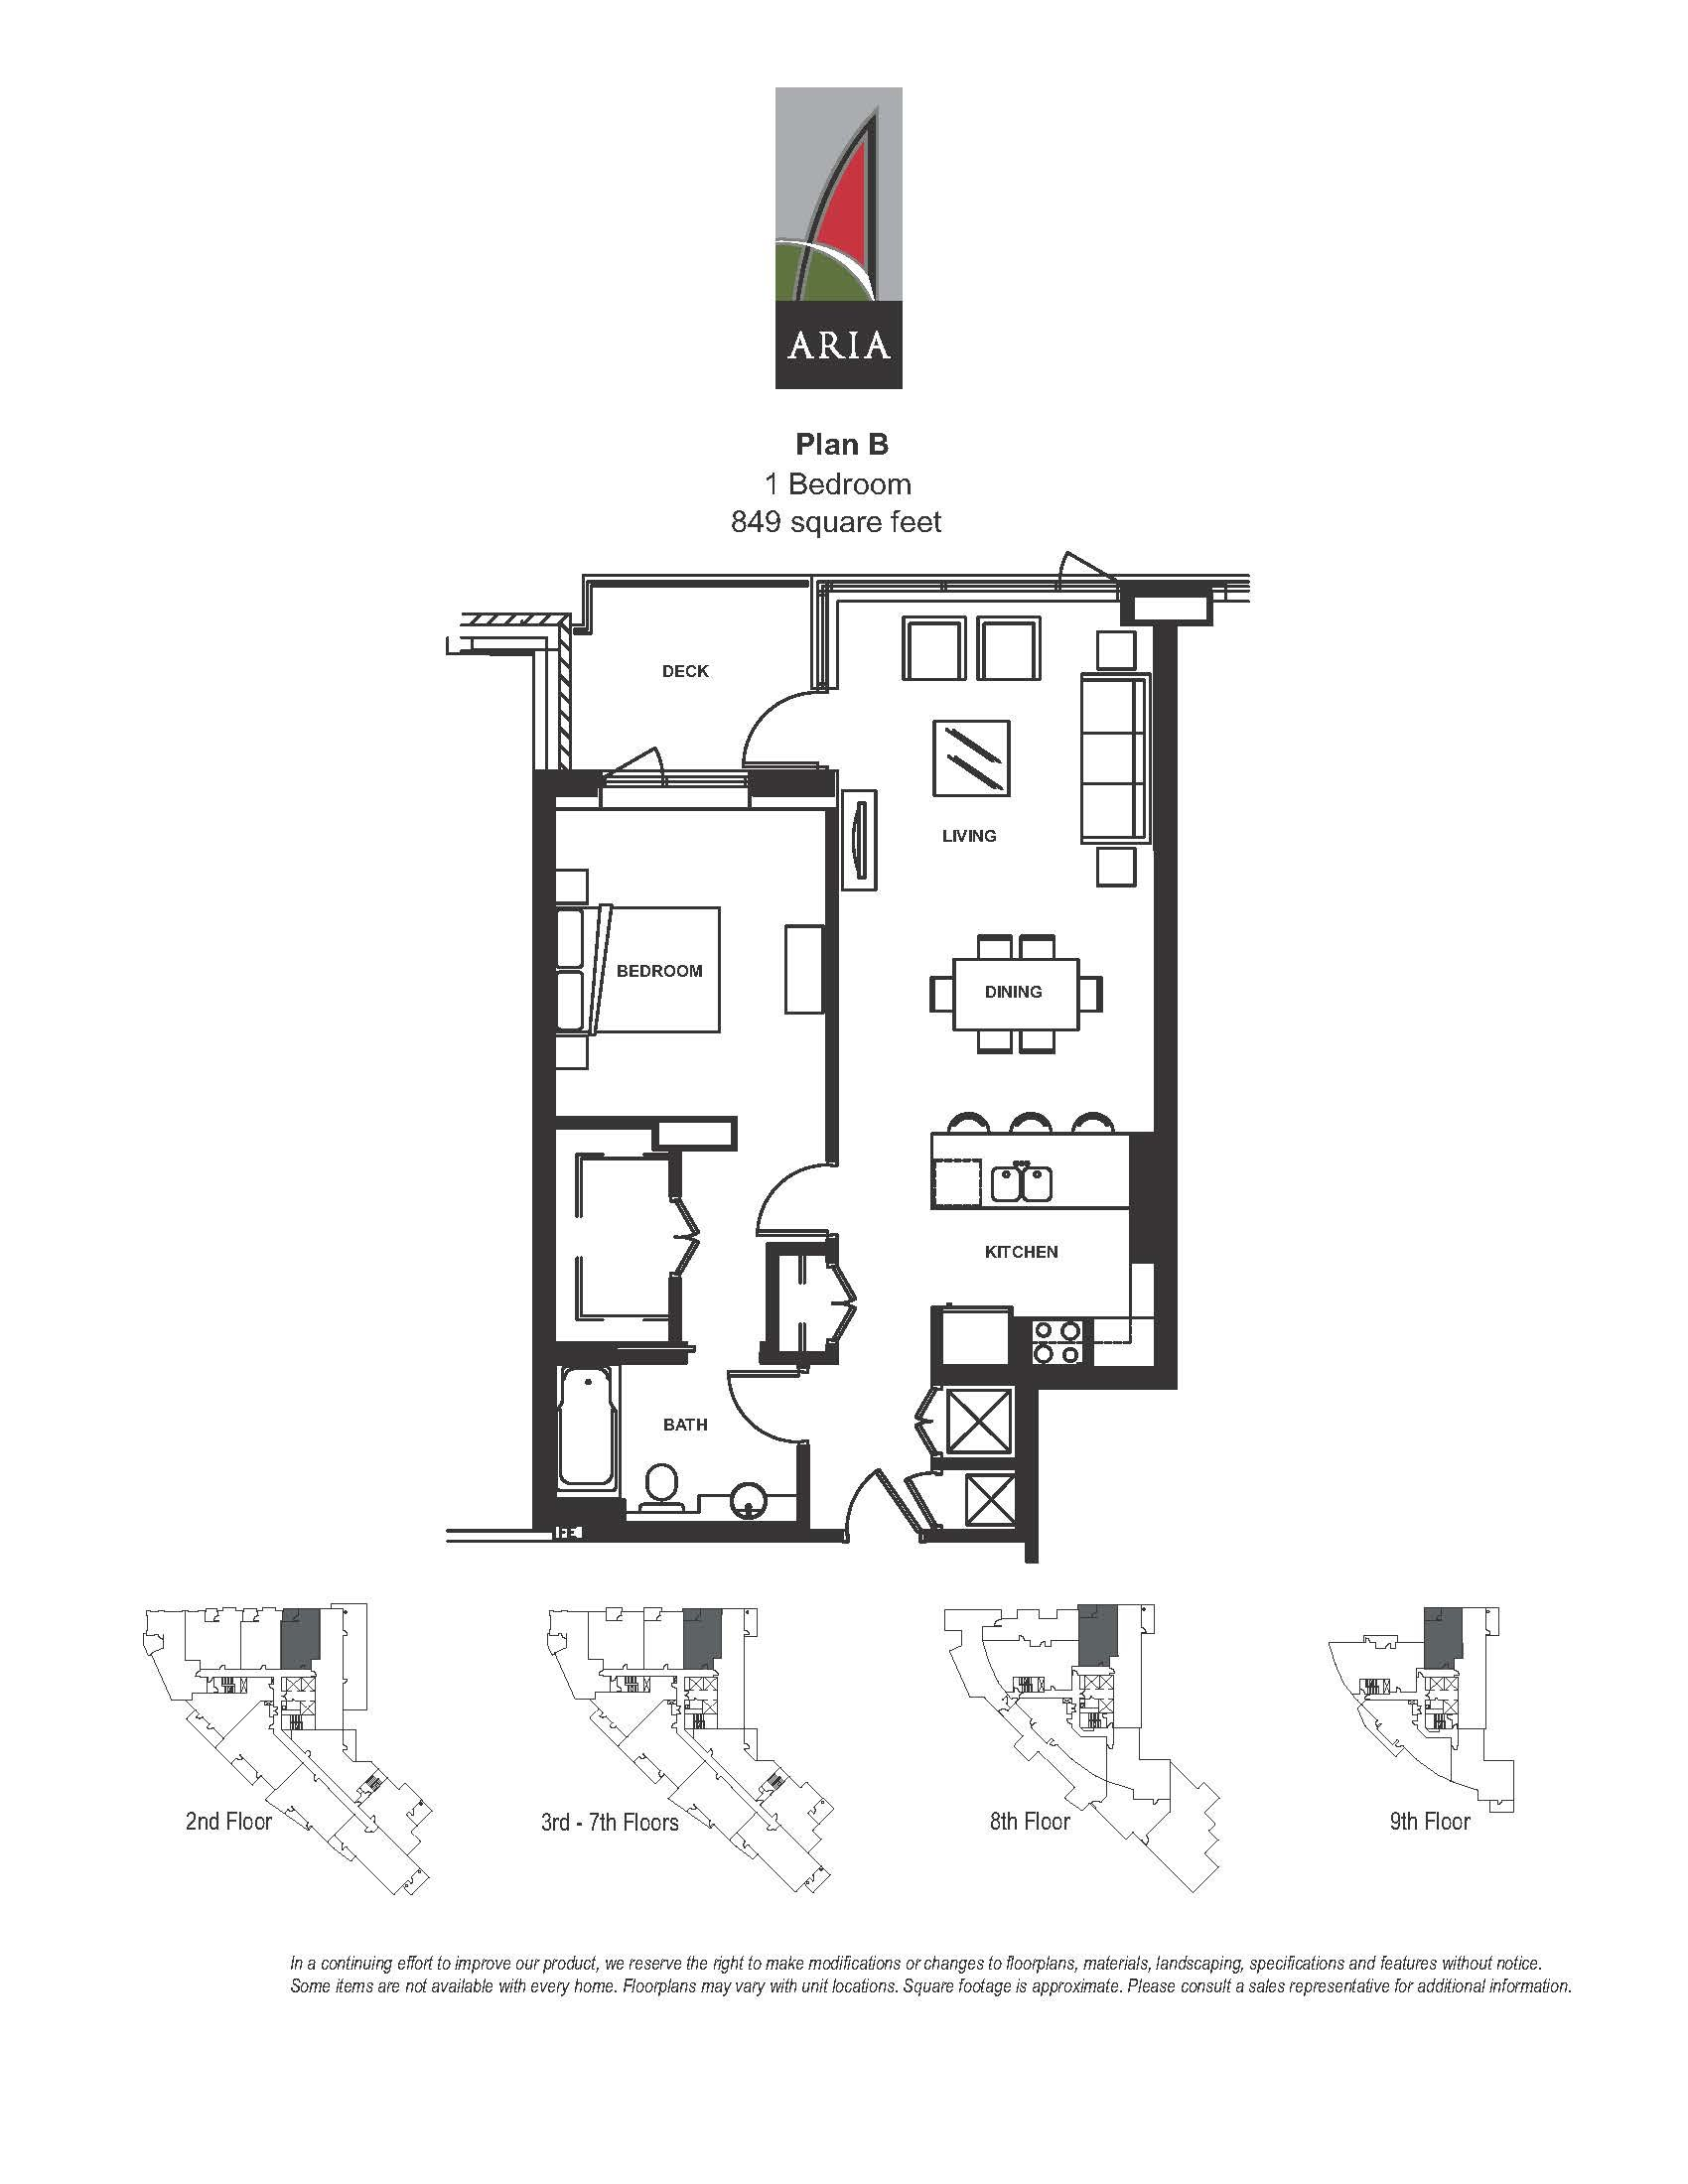 Aria 1 Bedroom – Plan B